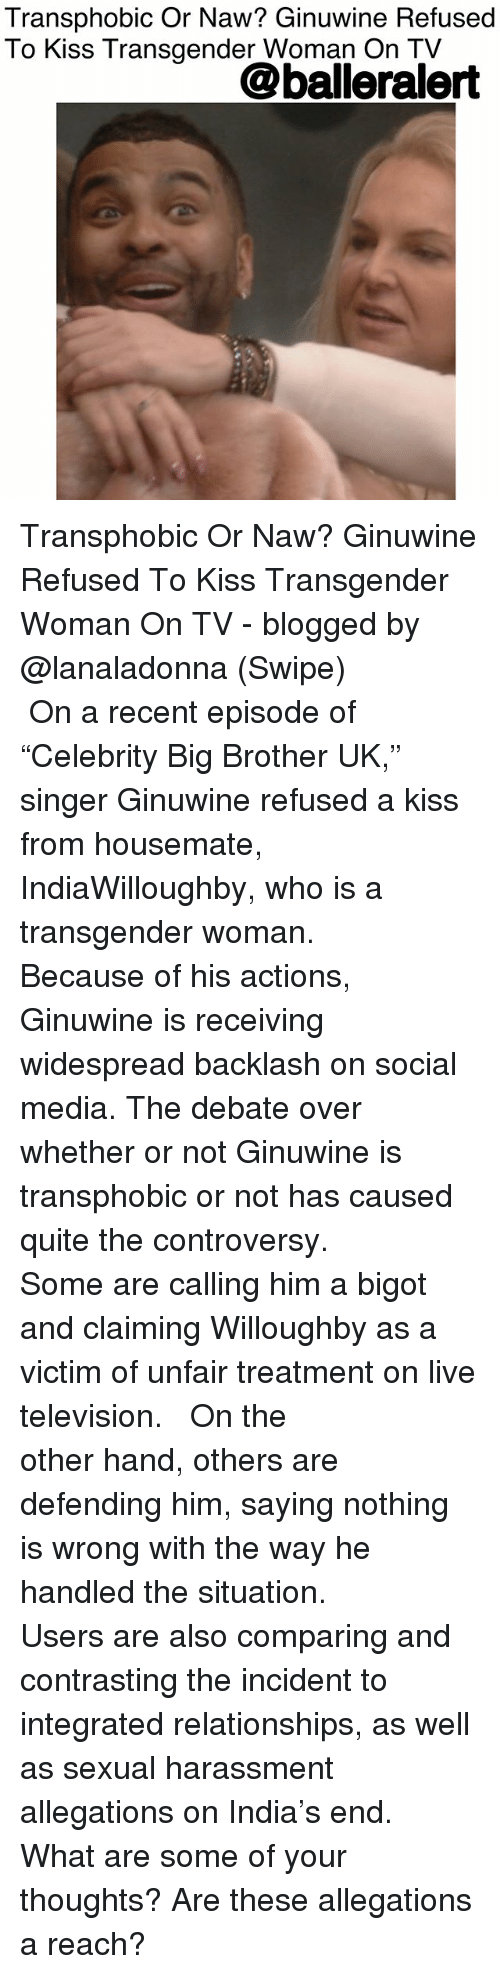 """a transgender: Transphobic Or Naw? Ginuwine Refused  To Kiss Transgender Woman On TV  @balleralert Transphobic Or Naw? Ginuwine Refused To Kiss Transgender Woman On TV - blogged by @lanaladonna (Swipe) ⠀⠀⠀⠀⠀⠀⠀ ⠀⠀⠀⠀⠀⠀⠀ On a recent episode of """"Celebrity Big Brother UK,"""" singer Ginuwine refused a kiss from housemate, IndiaWilloughby, who is a transgender woman. ⠀⠀⠀⠀⠀⠀⠀ ⠀⠀⠀⠀⠀⠀⠀ Because of his actions, Ginuwine is receiving widespread backlash on social media. The debate over whether or not Ginuwine is transphobic or not has caused quite the controversy. ⠀⠀⠀⠀⠀⠀⠀ ⠀⠀⠀⠀⠀⠀⠀ Some are calling him a bigot and claiming Willoughby as a victim of unfair treatment on live television. ⠀⠀⠀⠀⠀⠀⠀ ⠀⠀⠀⠀⠀⠀⠀ On the other hand, others are defending him, saying nothing is wrong with the way he handled the situation. ⠀⠀⠀⠀⠀⠀⠀ ⠀⠀⠀⠀⠀⠀⠀ Users are also comparing and contrasting the incident to integrated relationships, as well as sexual harassment allegations on India's end. ⠀⠀⠀⠀⠀⠀⠀ What are some of your thoughts? Are these allegations a reach?"""